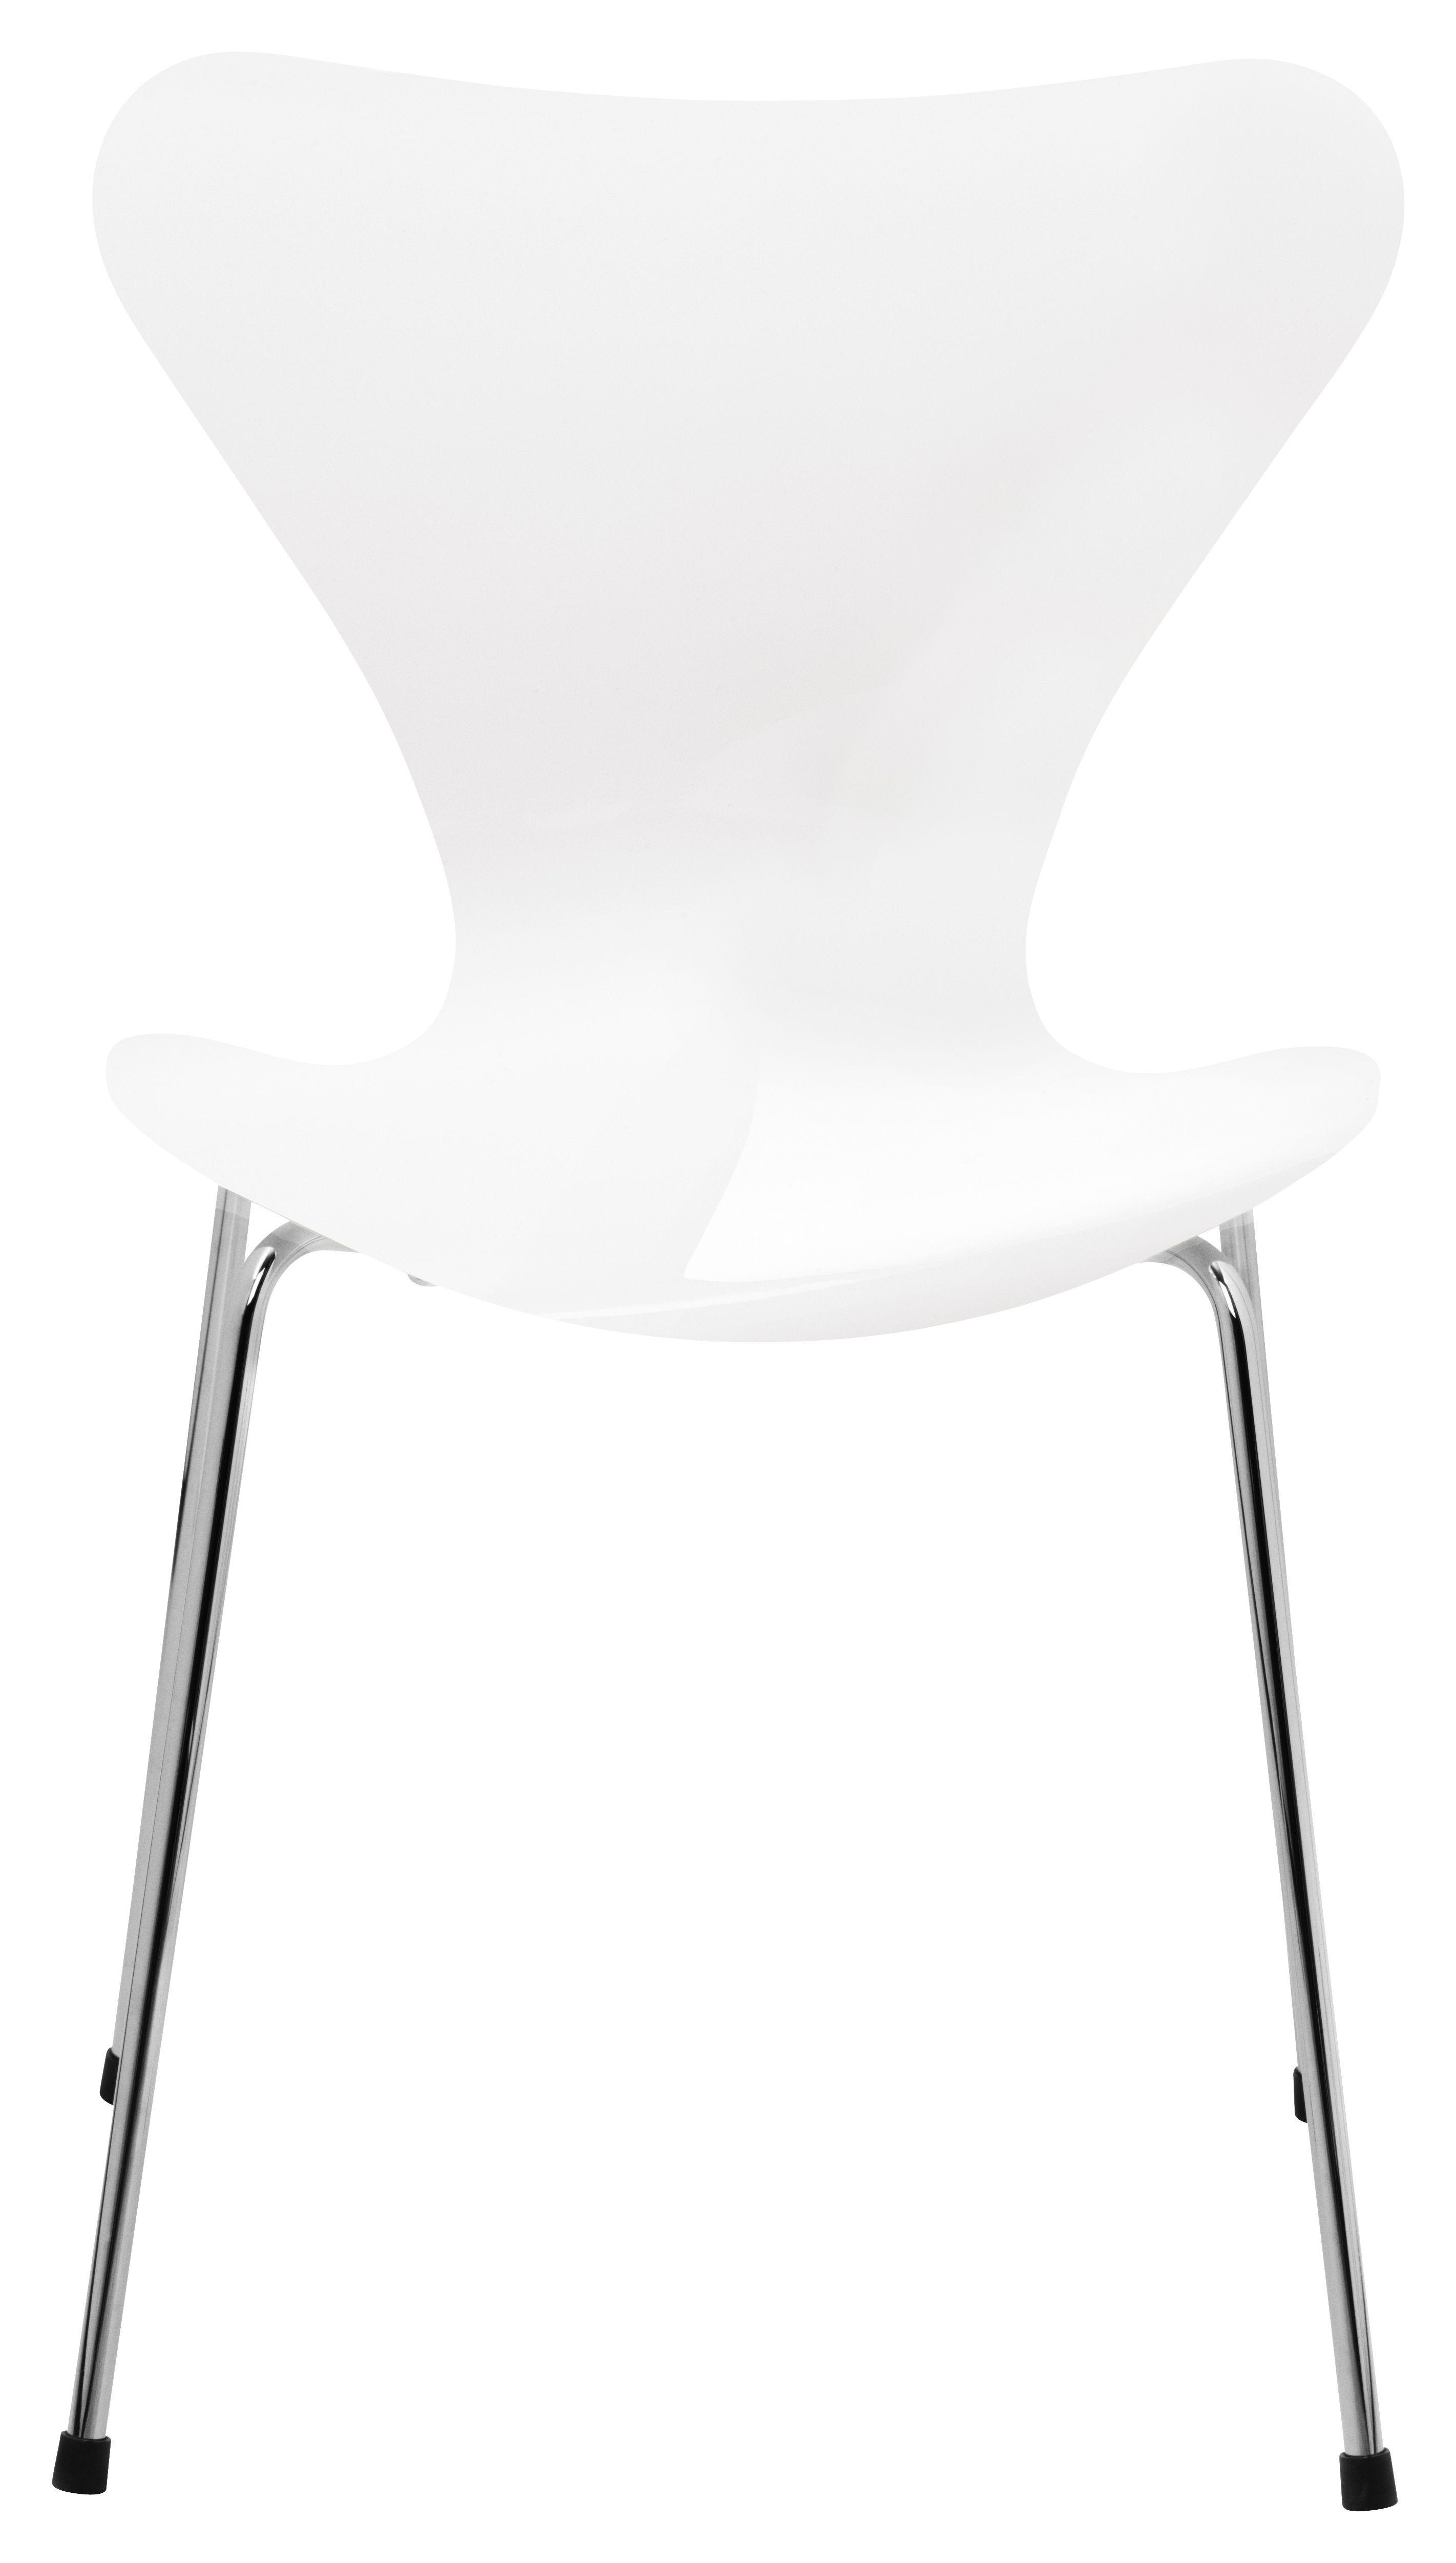 Furniture - Chairs - Série 7 Stacking chair - Lacquered wood by Fritz Hansen - White lacquered - Lacquered plywood, Steel